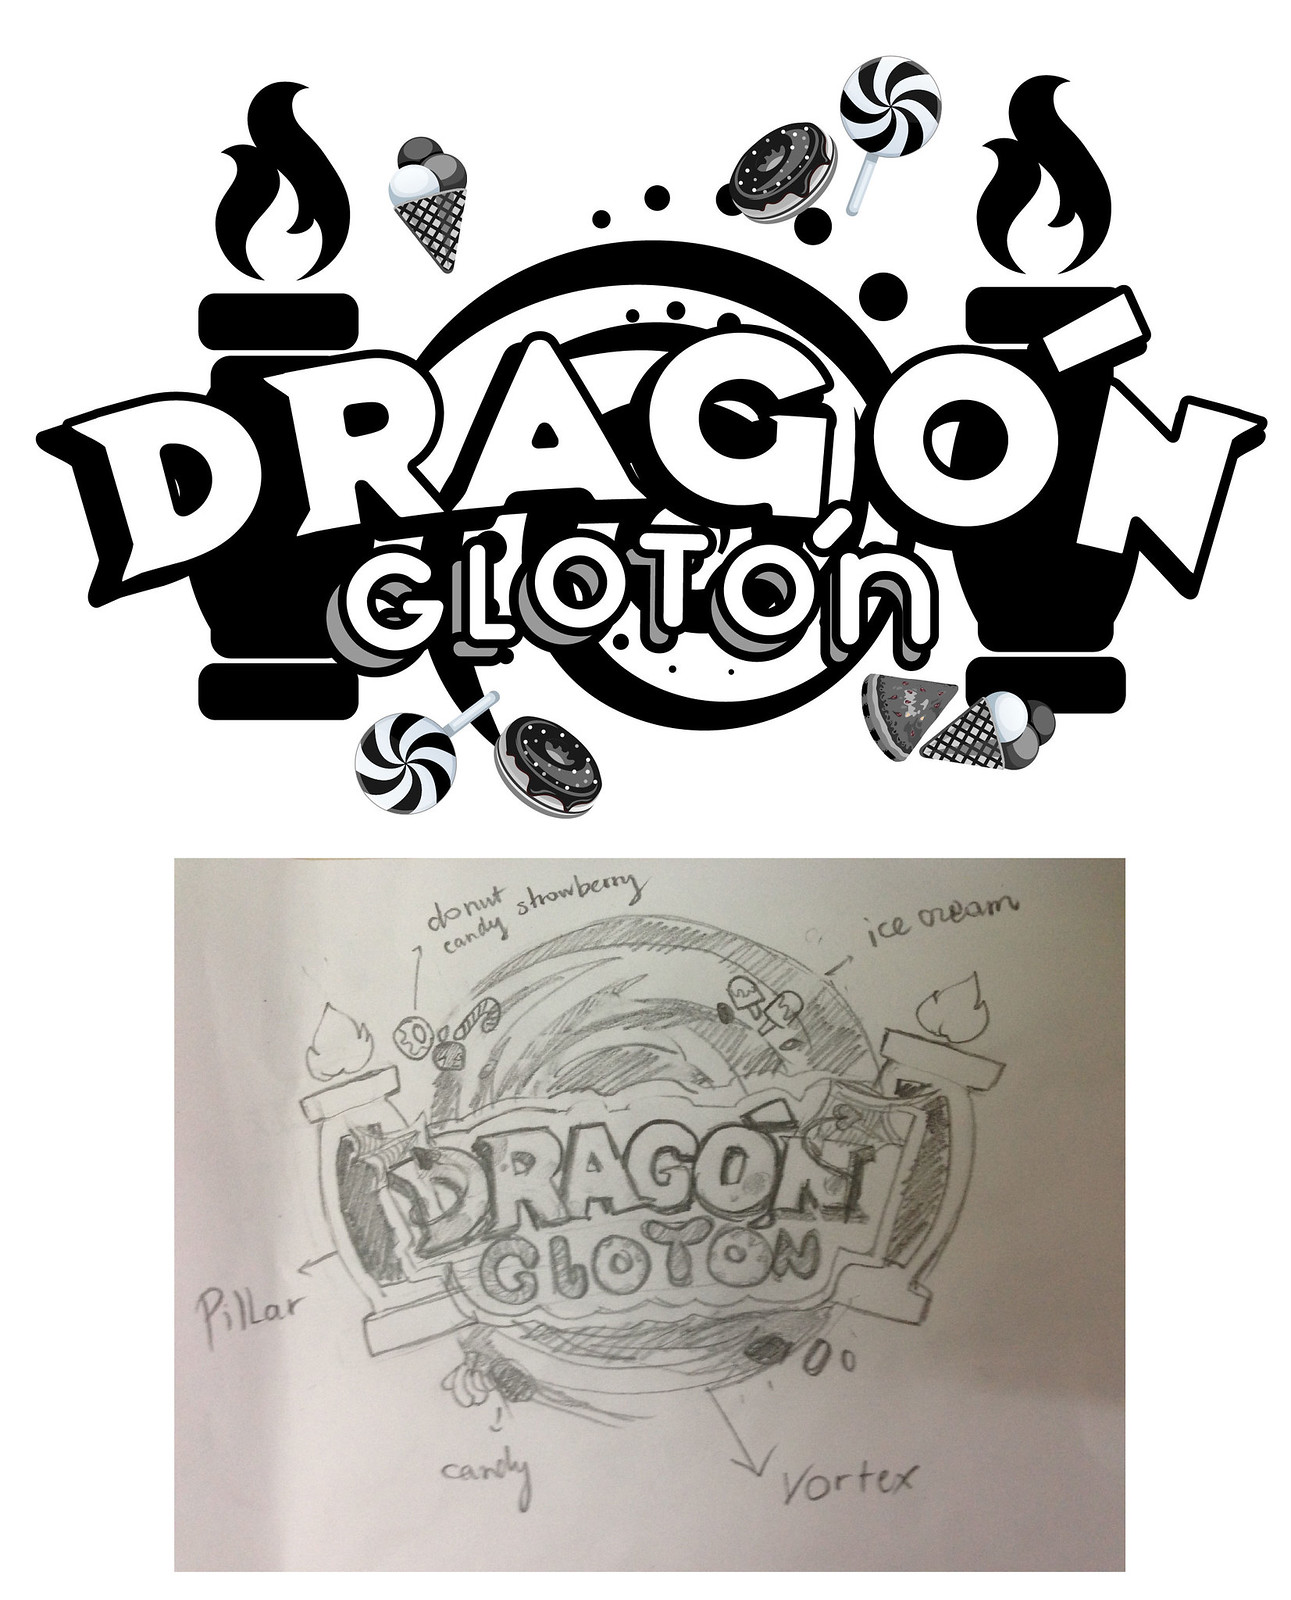 Sketch-Logo-Dragon-Gloton